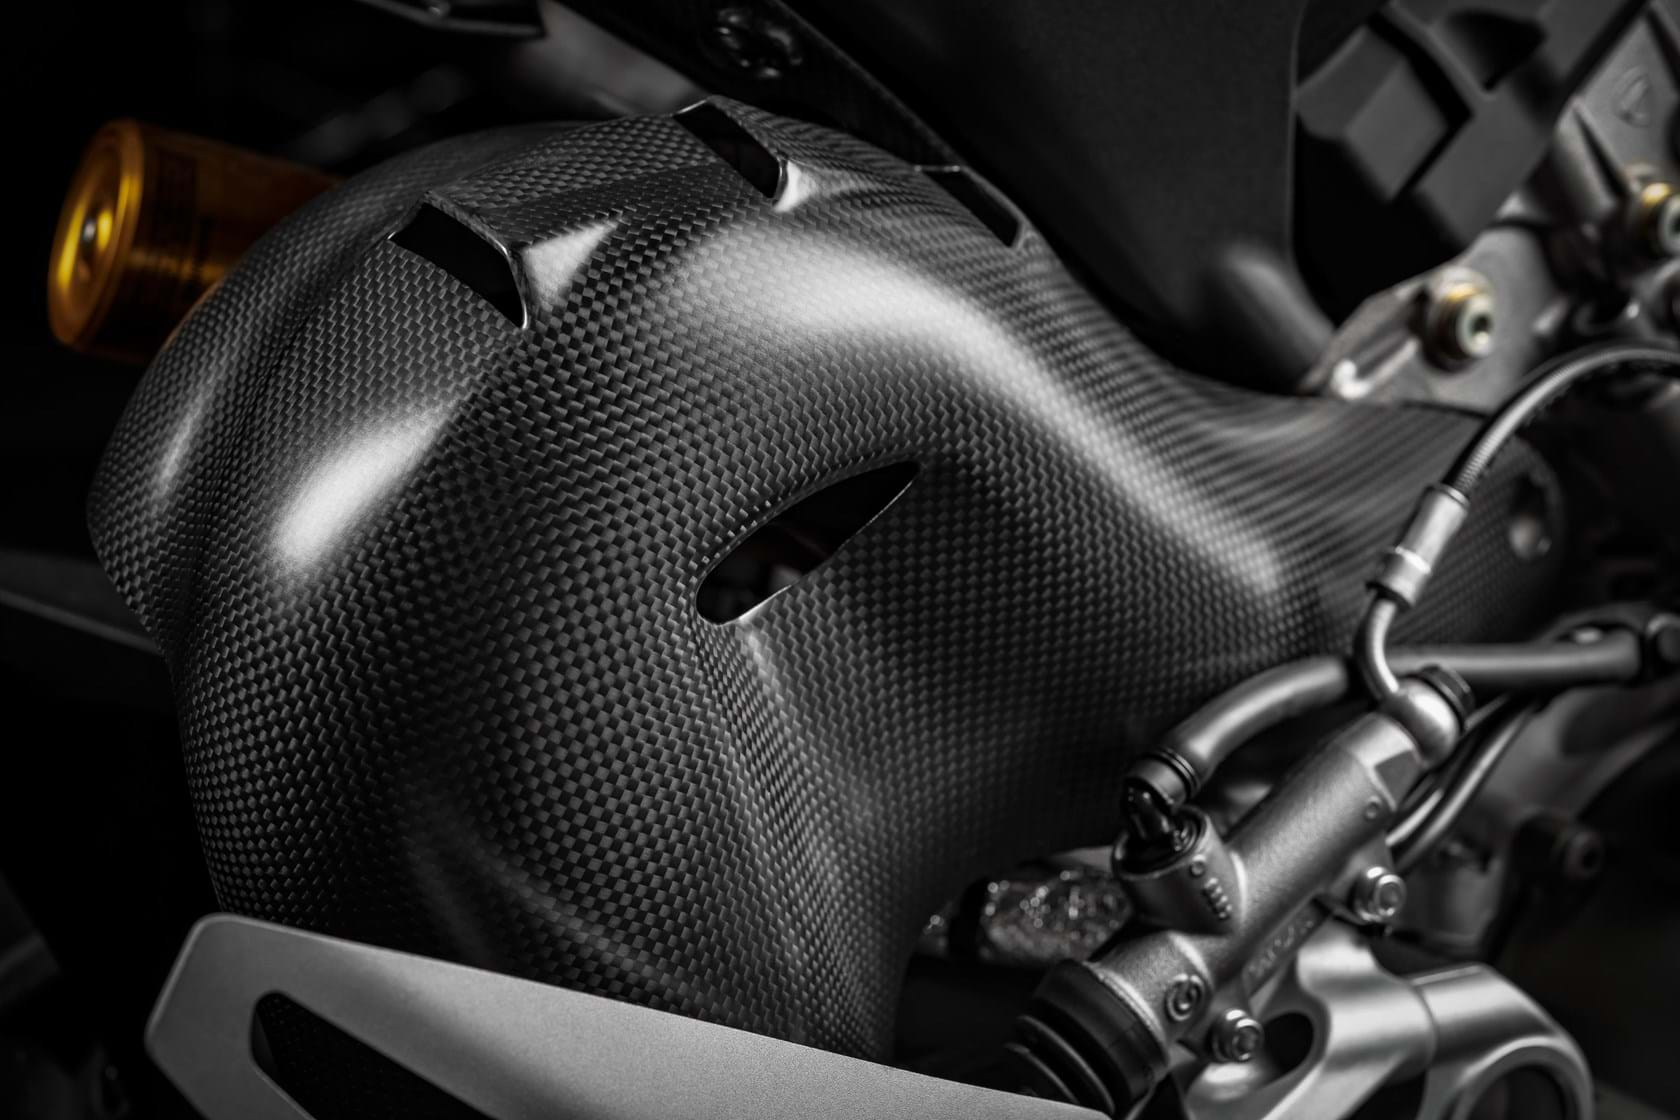 First Look Ducati Panigale V4 R The Bike Market